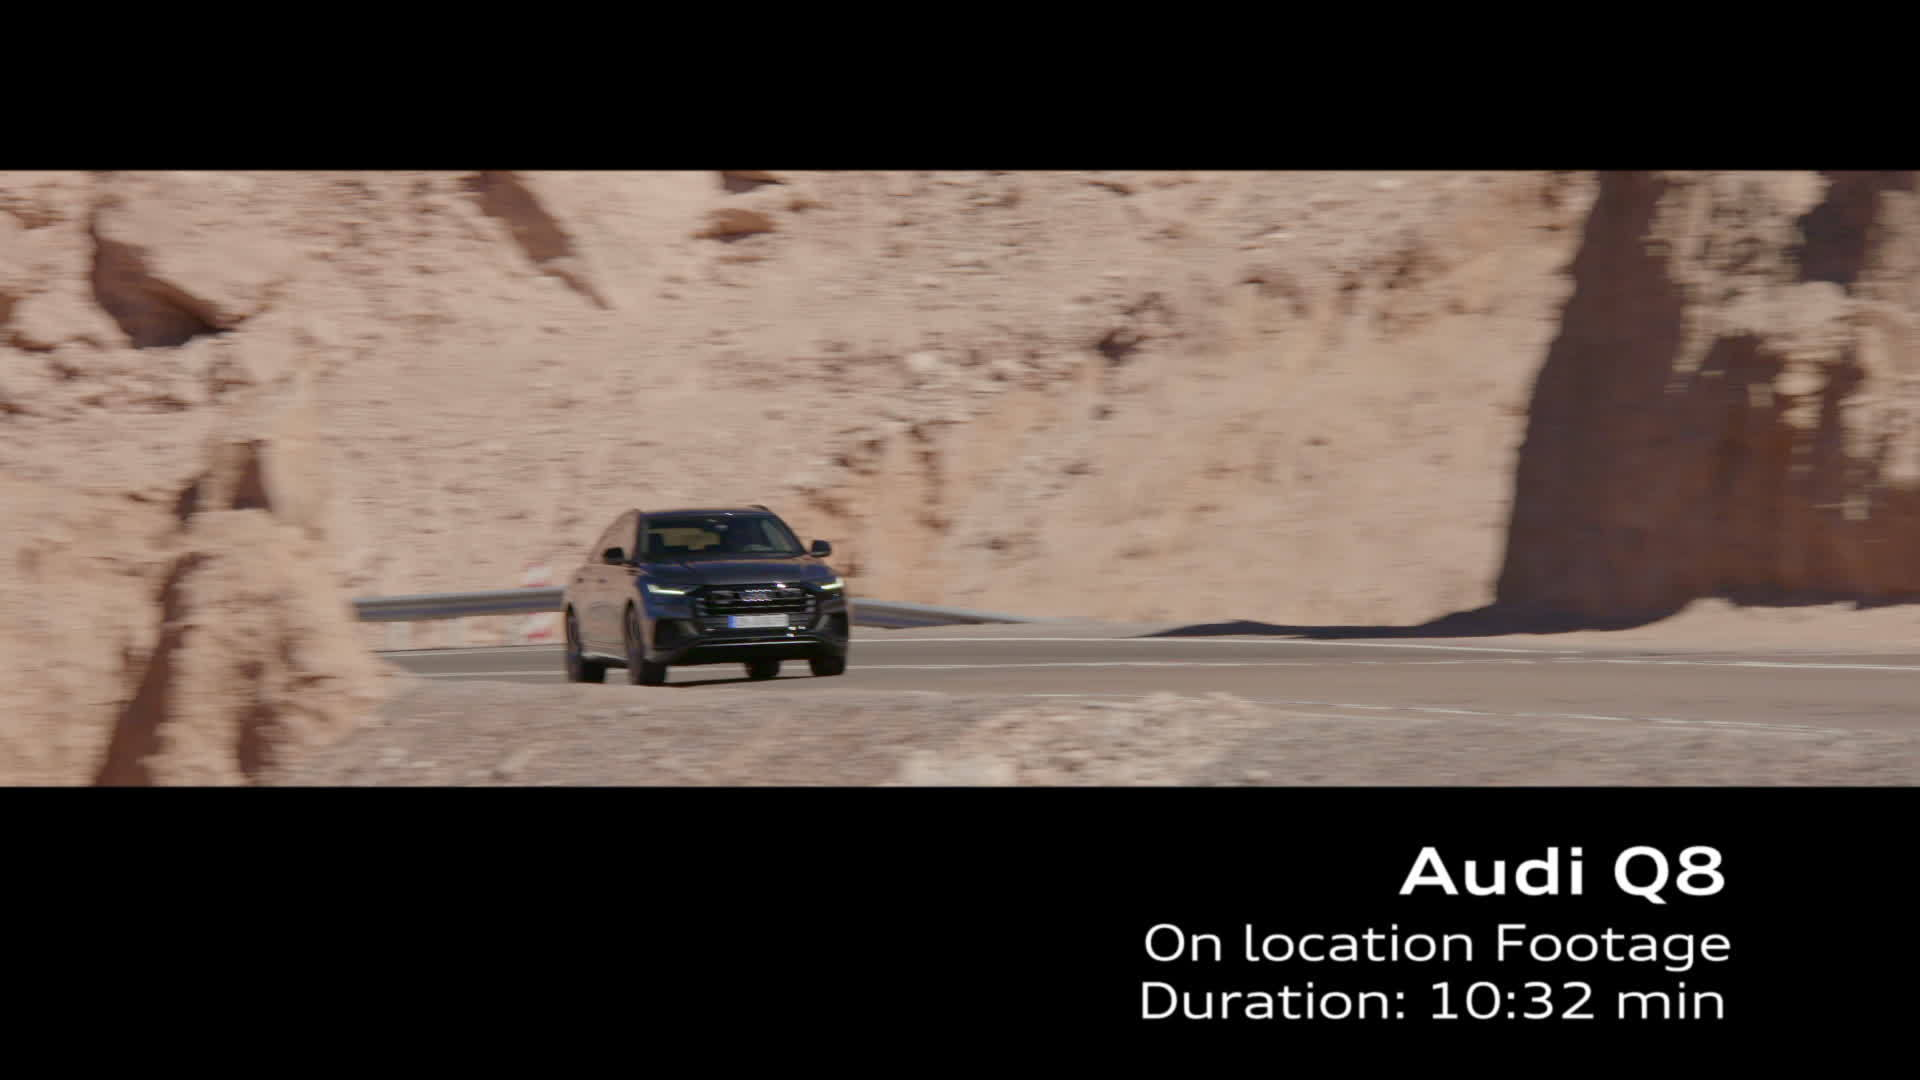 Audi Q8 Footage Chile Daytona grey